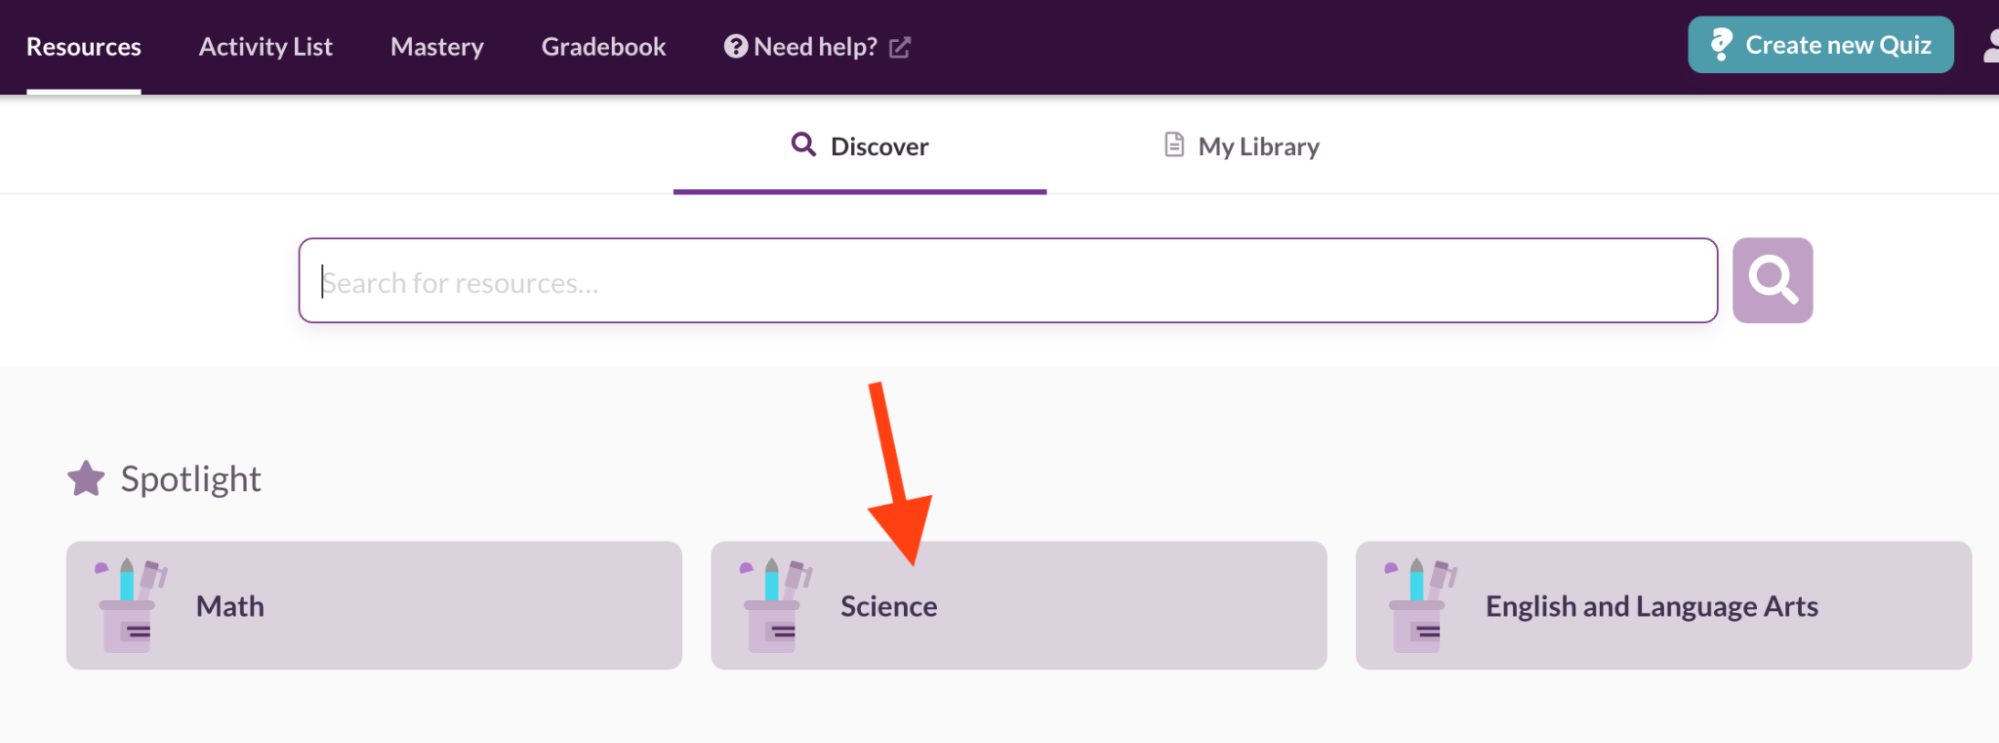 Searching for science diagnostic quizzes using the search bar